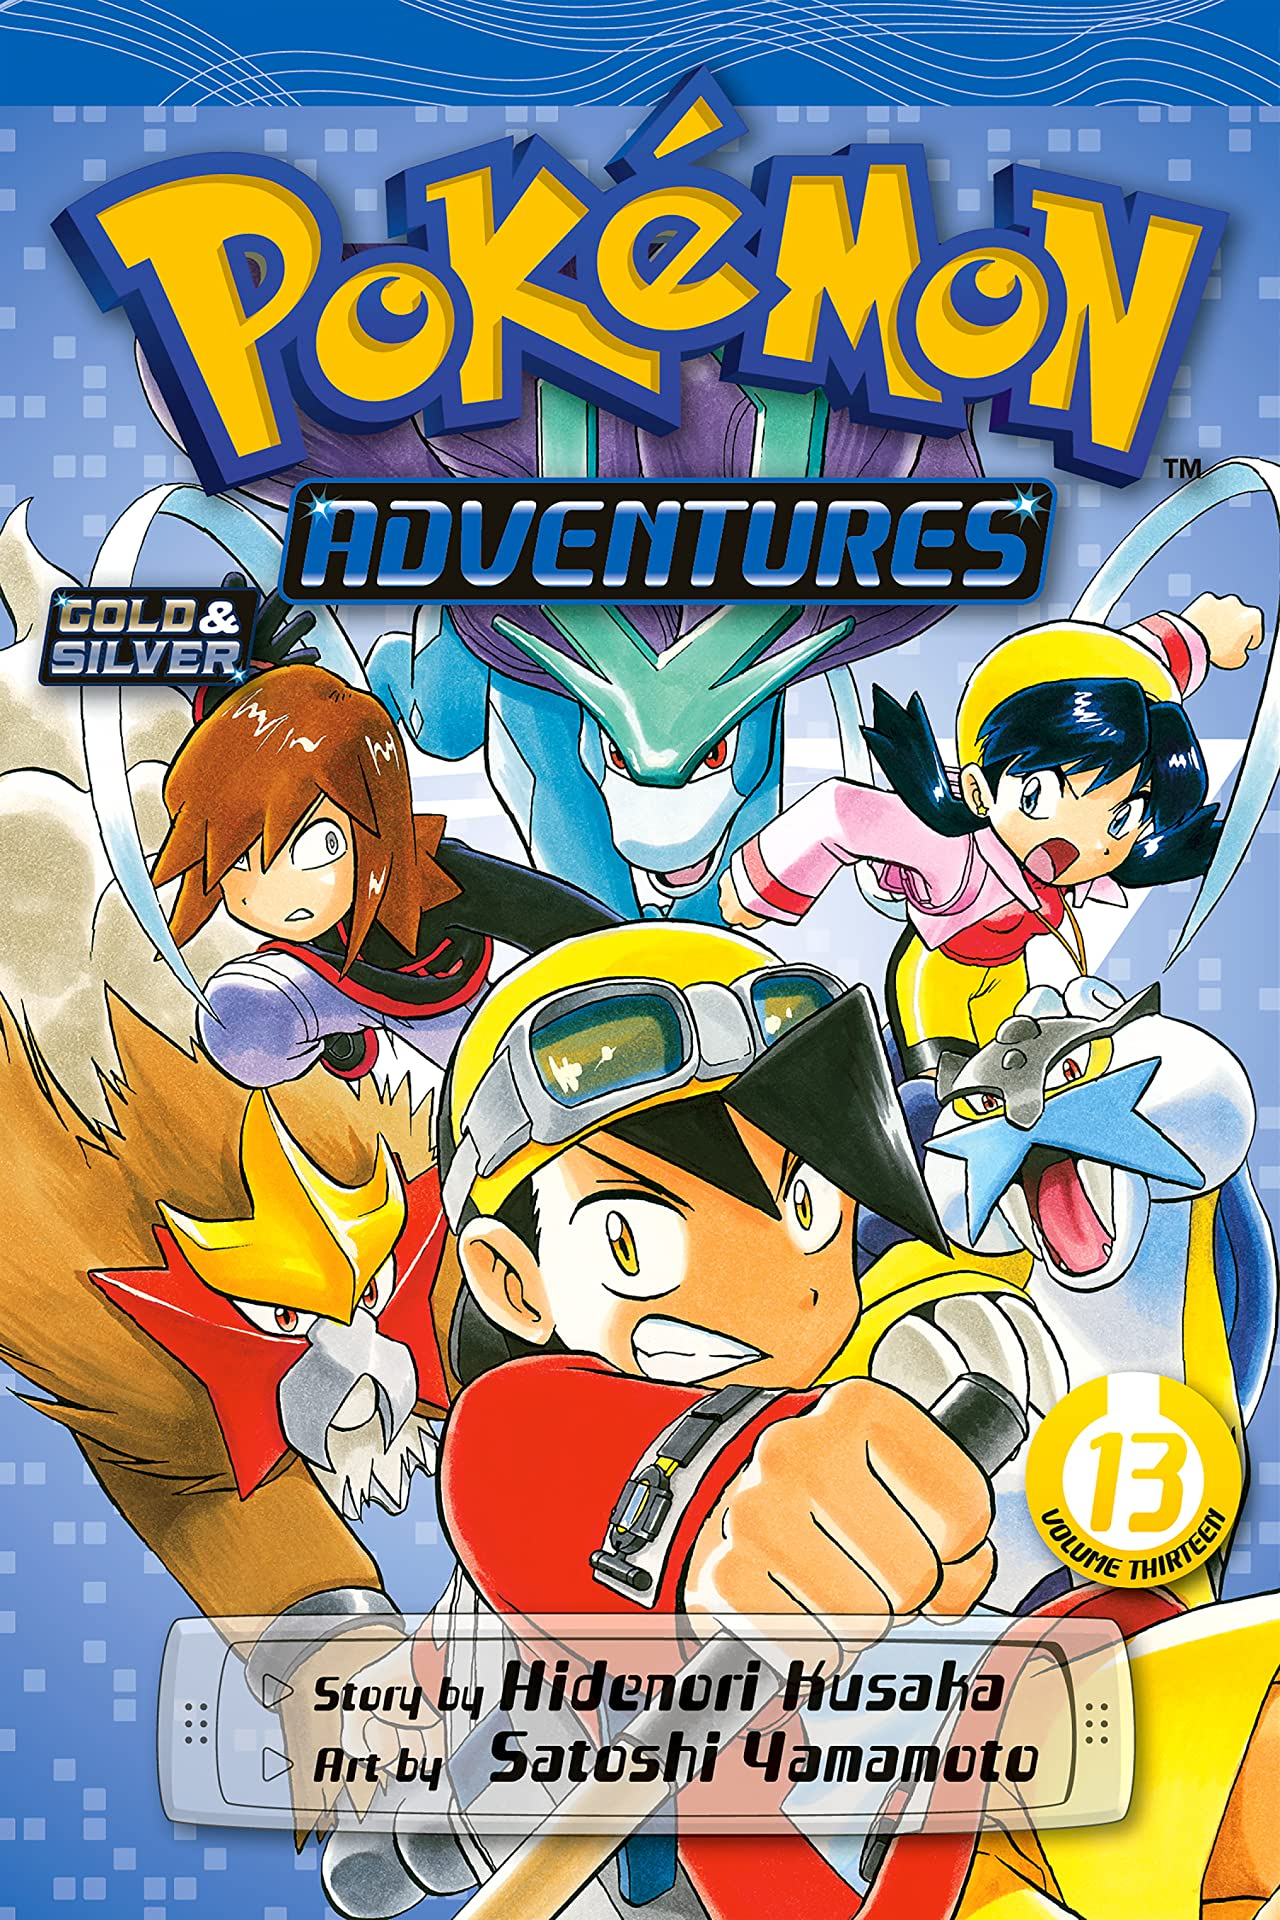 Pokémon Adventures (Gold and Silver) Vol. 13